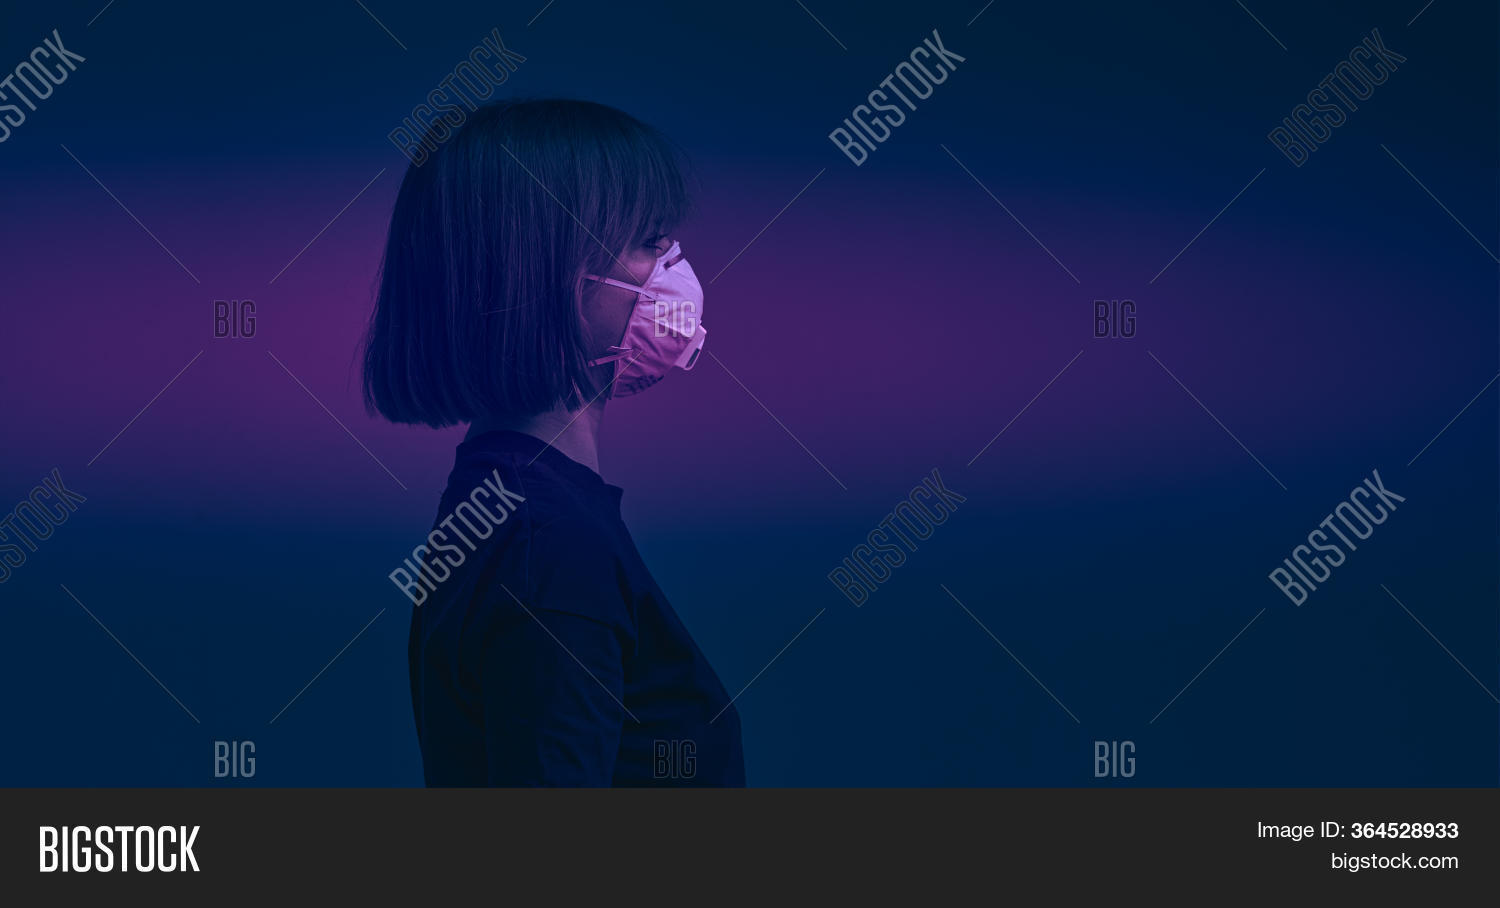 Portrait In Profile Of A Young Girl In A Surgical Mask On A Dramatic Background. Stop The Virus Post